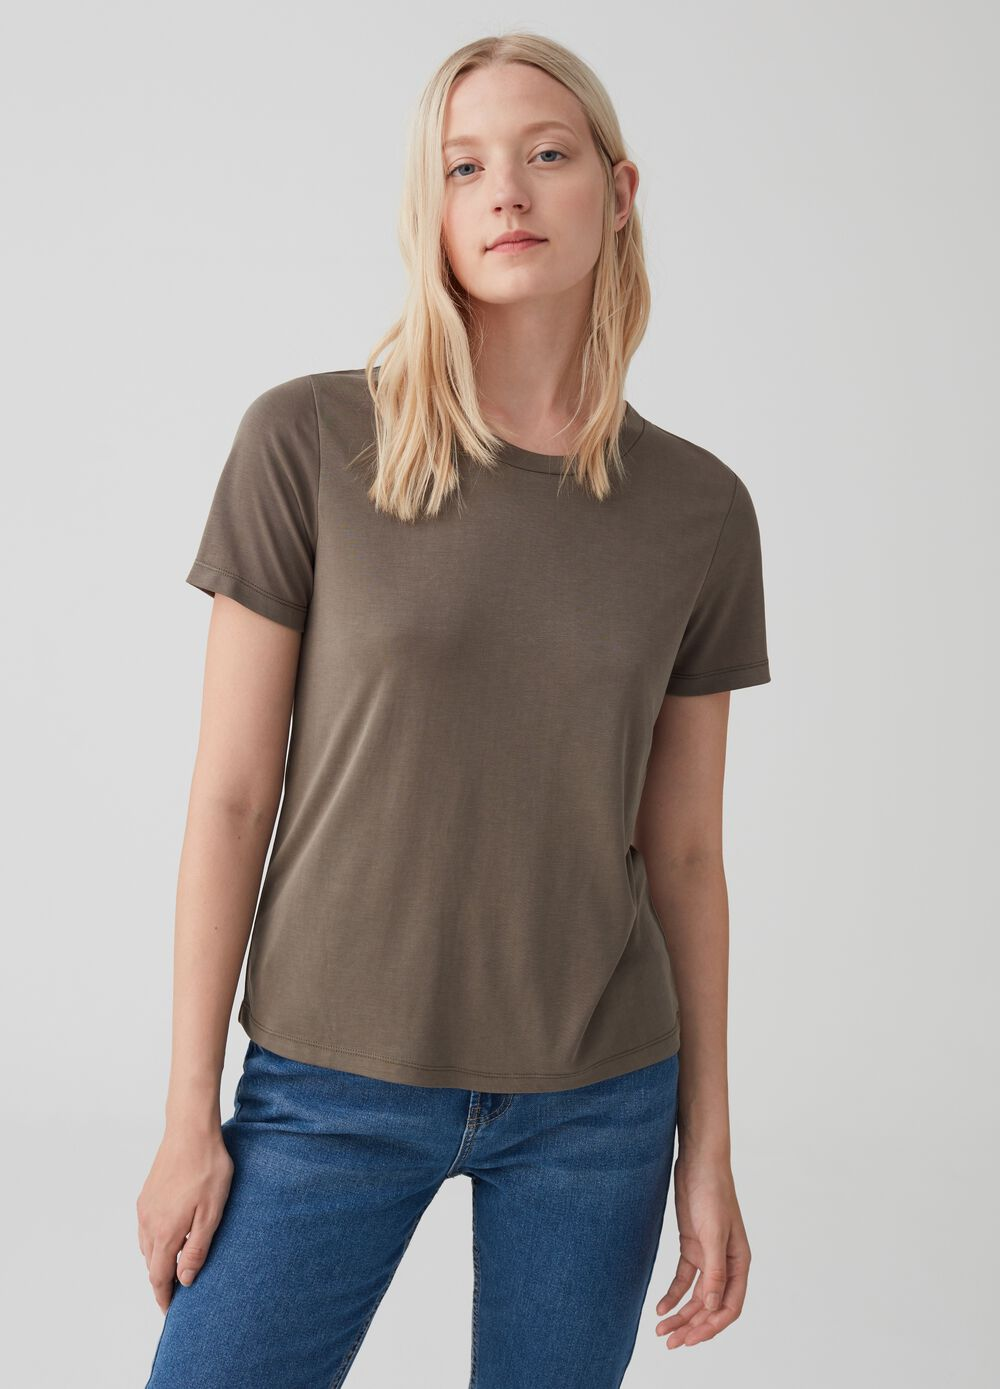 T-shirt with round neck and ribbing